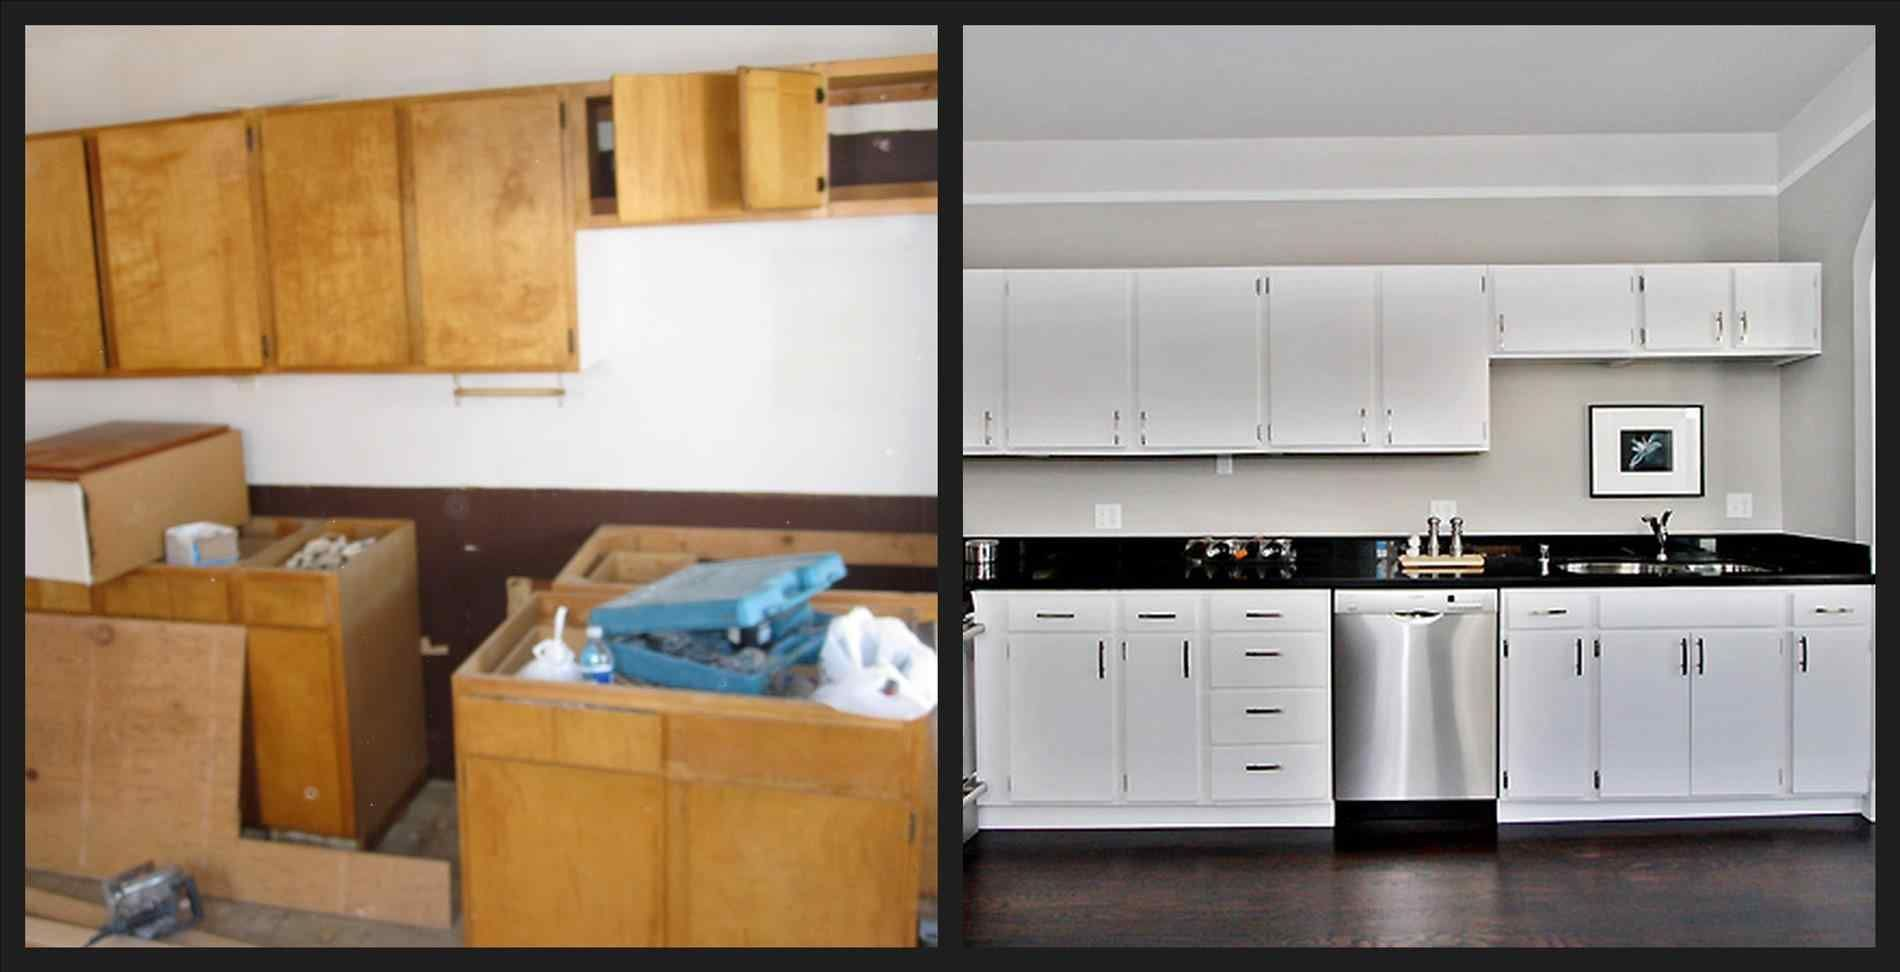 Of painted kitchen cabinets before and after kitchens refinish oak